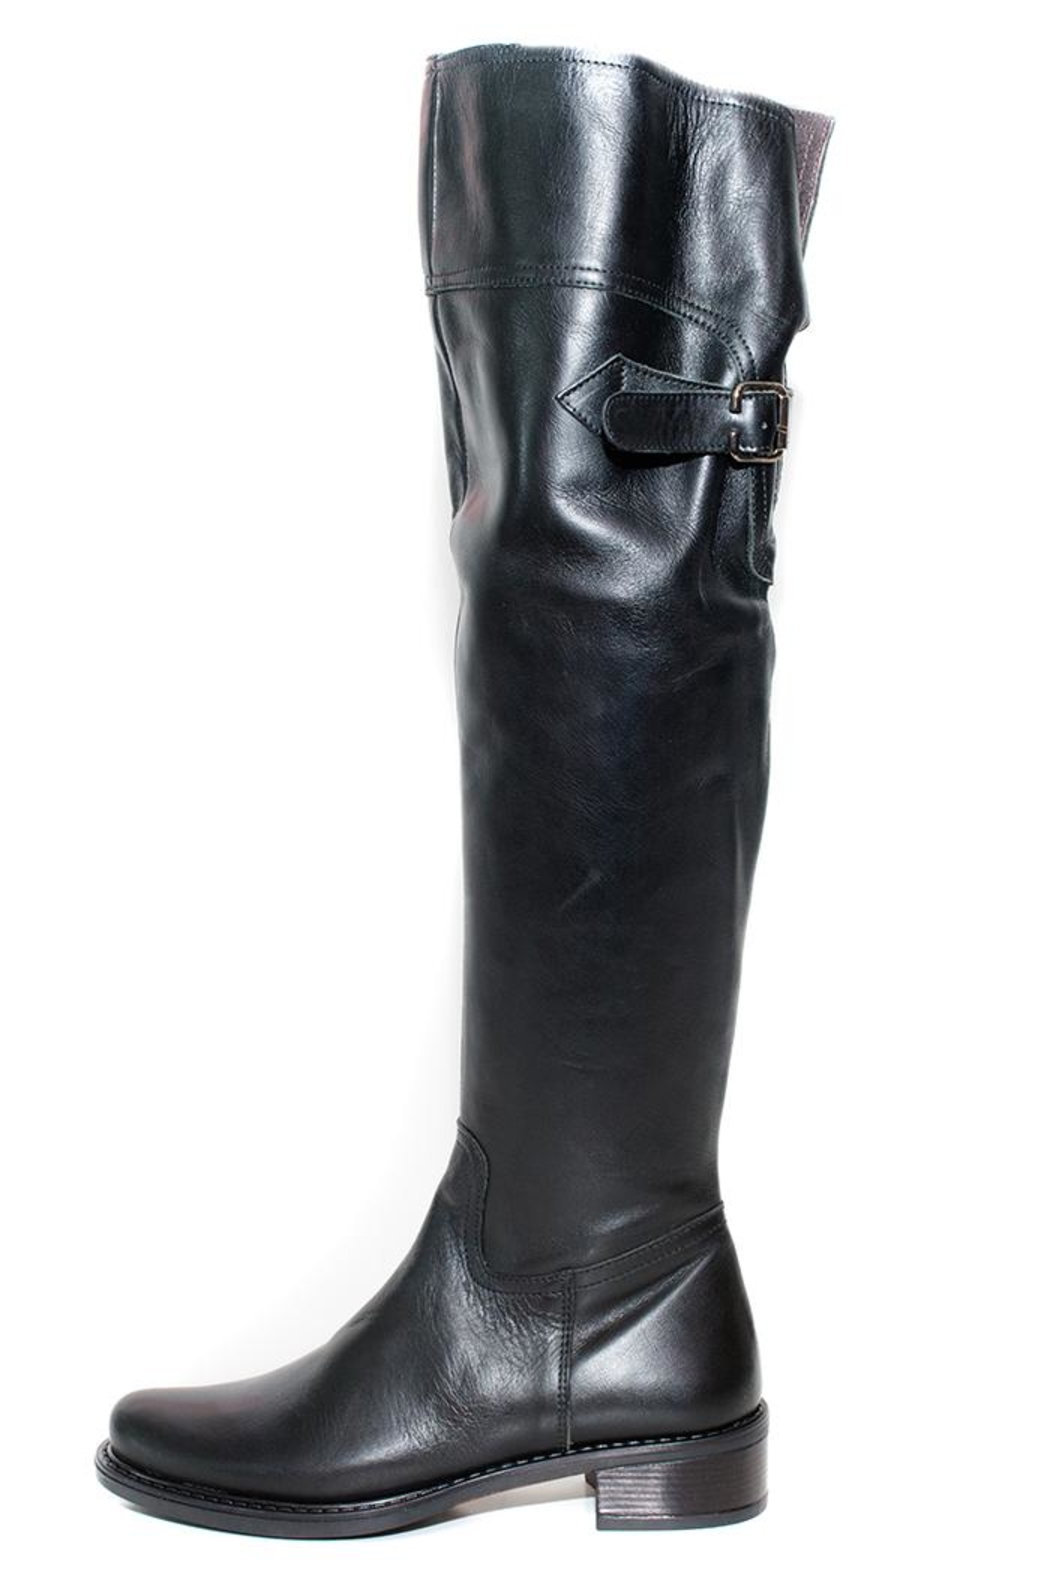 Lady Doc Knee-High Black Boot - Main Image